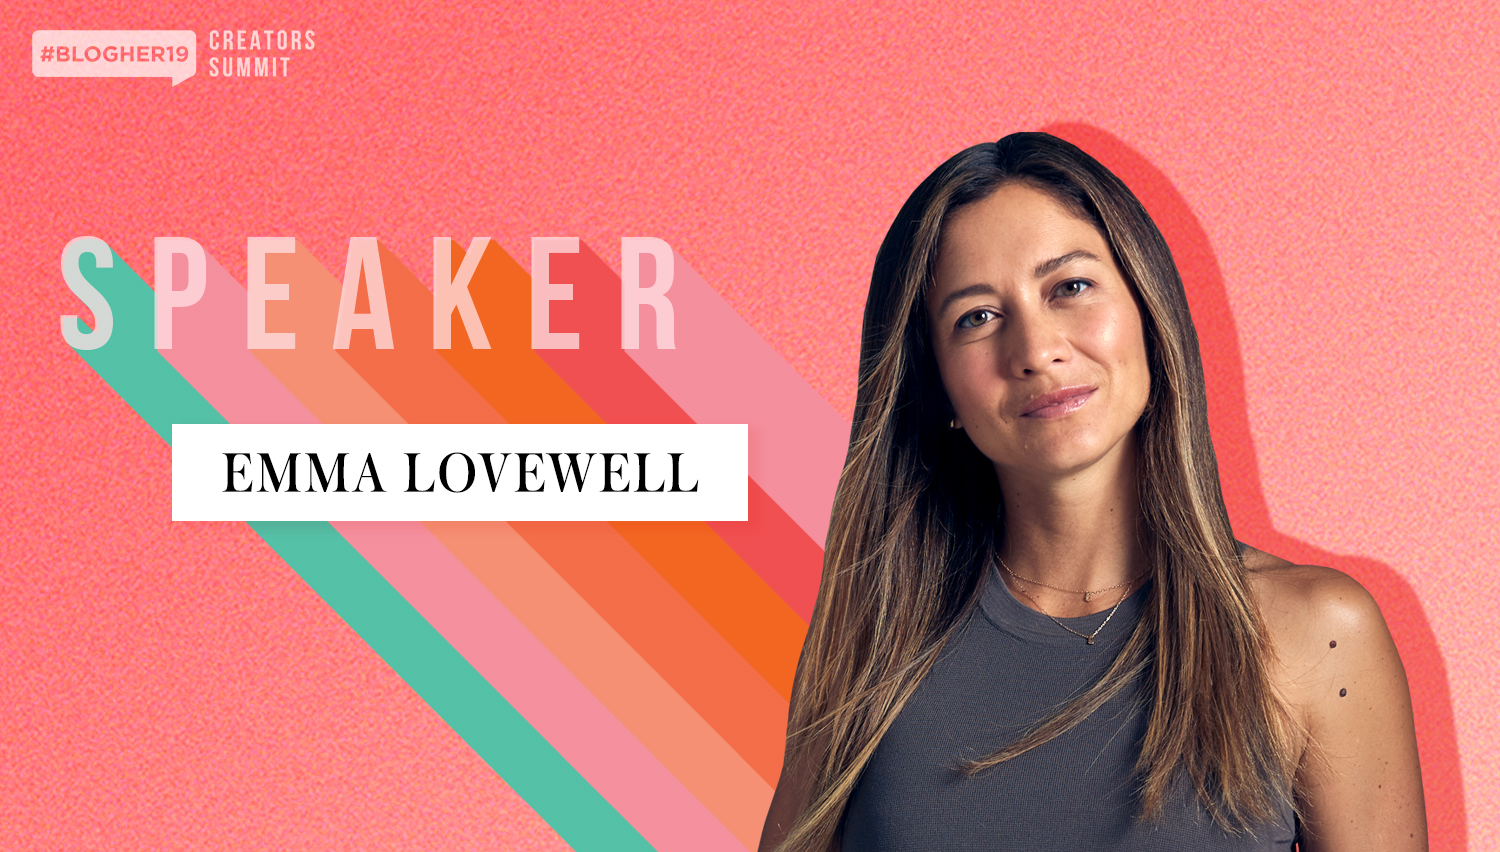 Meet SHE Media Partner AND #BLOGHER19 SPEAKER Emma Lovewell - Before she takes the main stage at our Creators Summit, we caught up with Emma on her daily routines, workouts, and tips bloggers and influencers NEED to know.